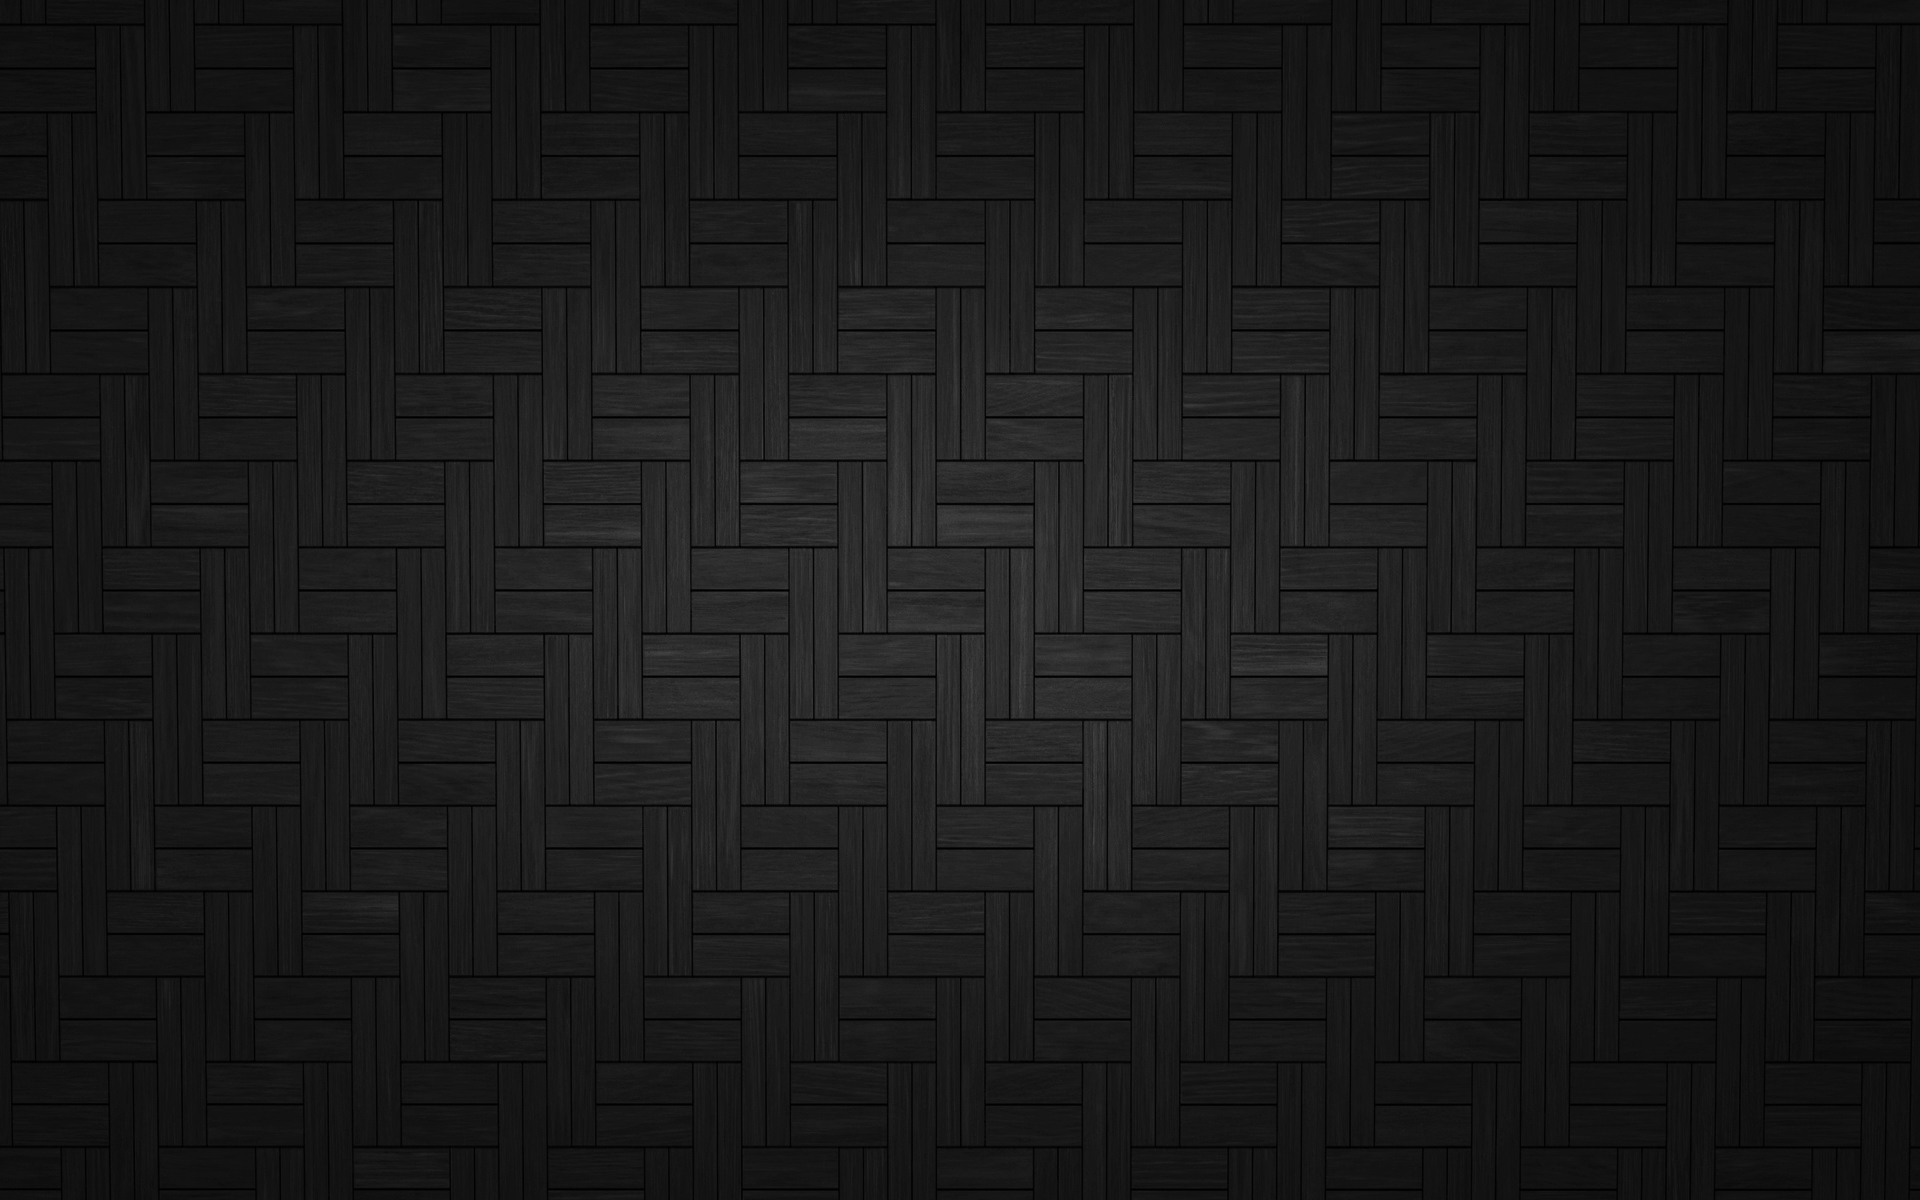 black wood texture, download photo, black dark wood, texture, background, planking, parquet